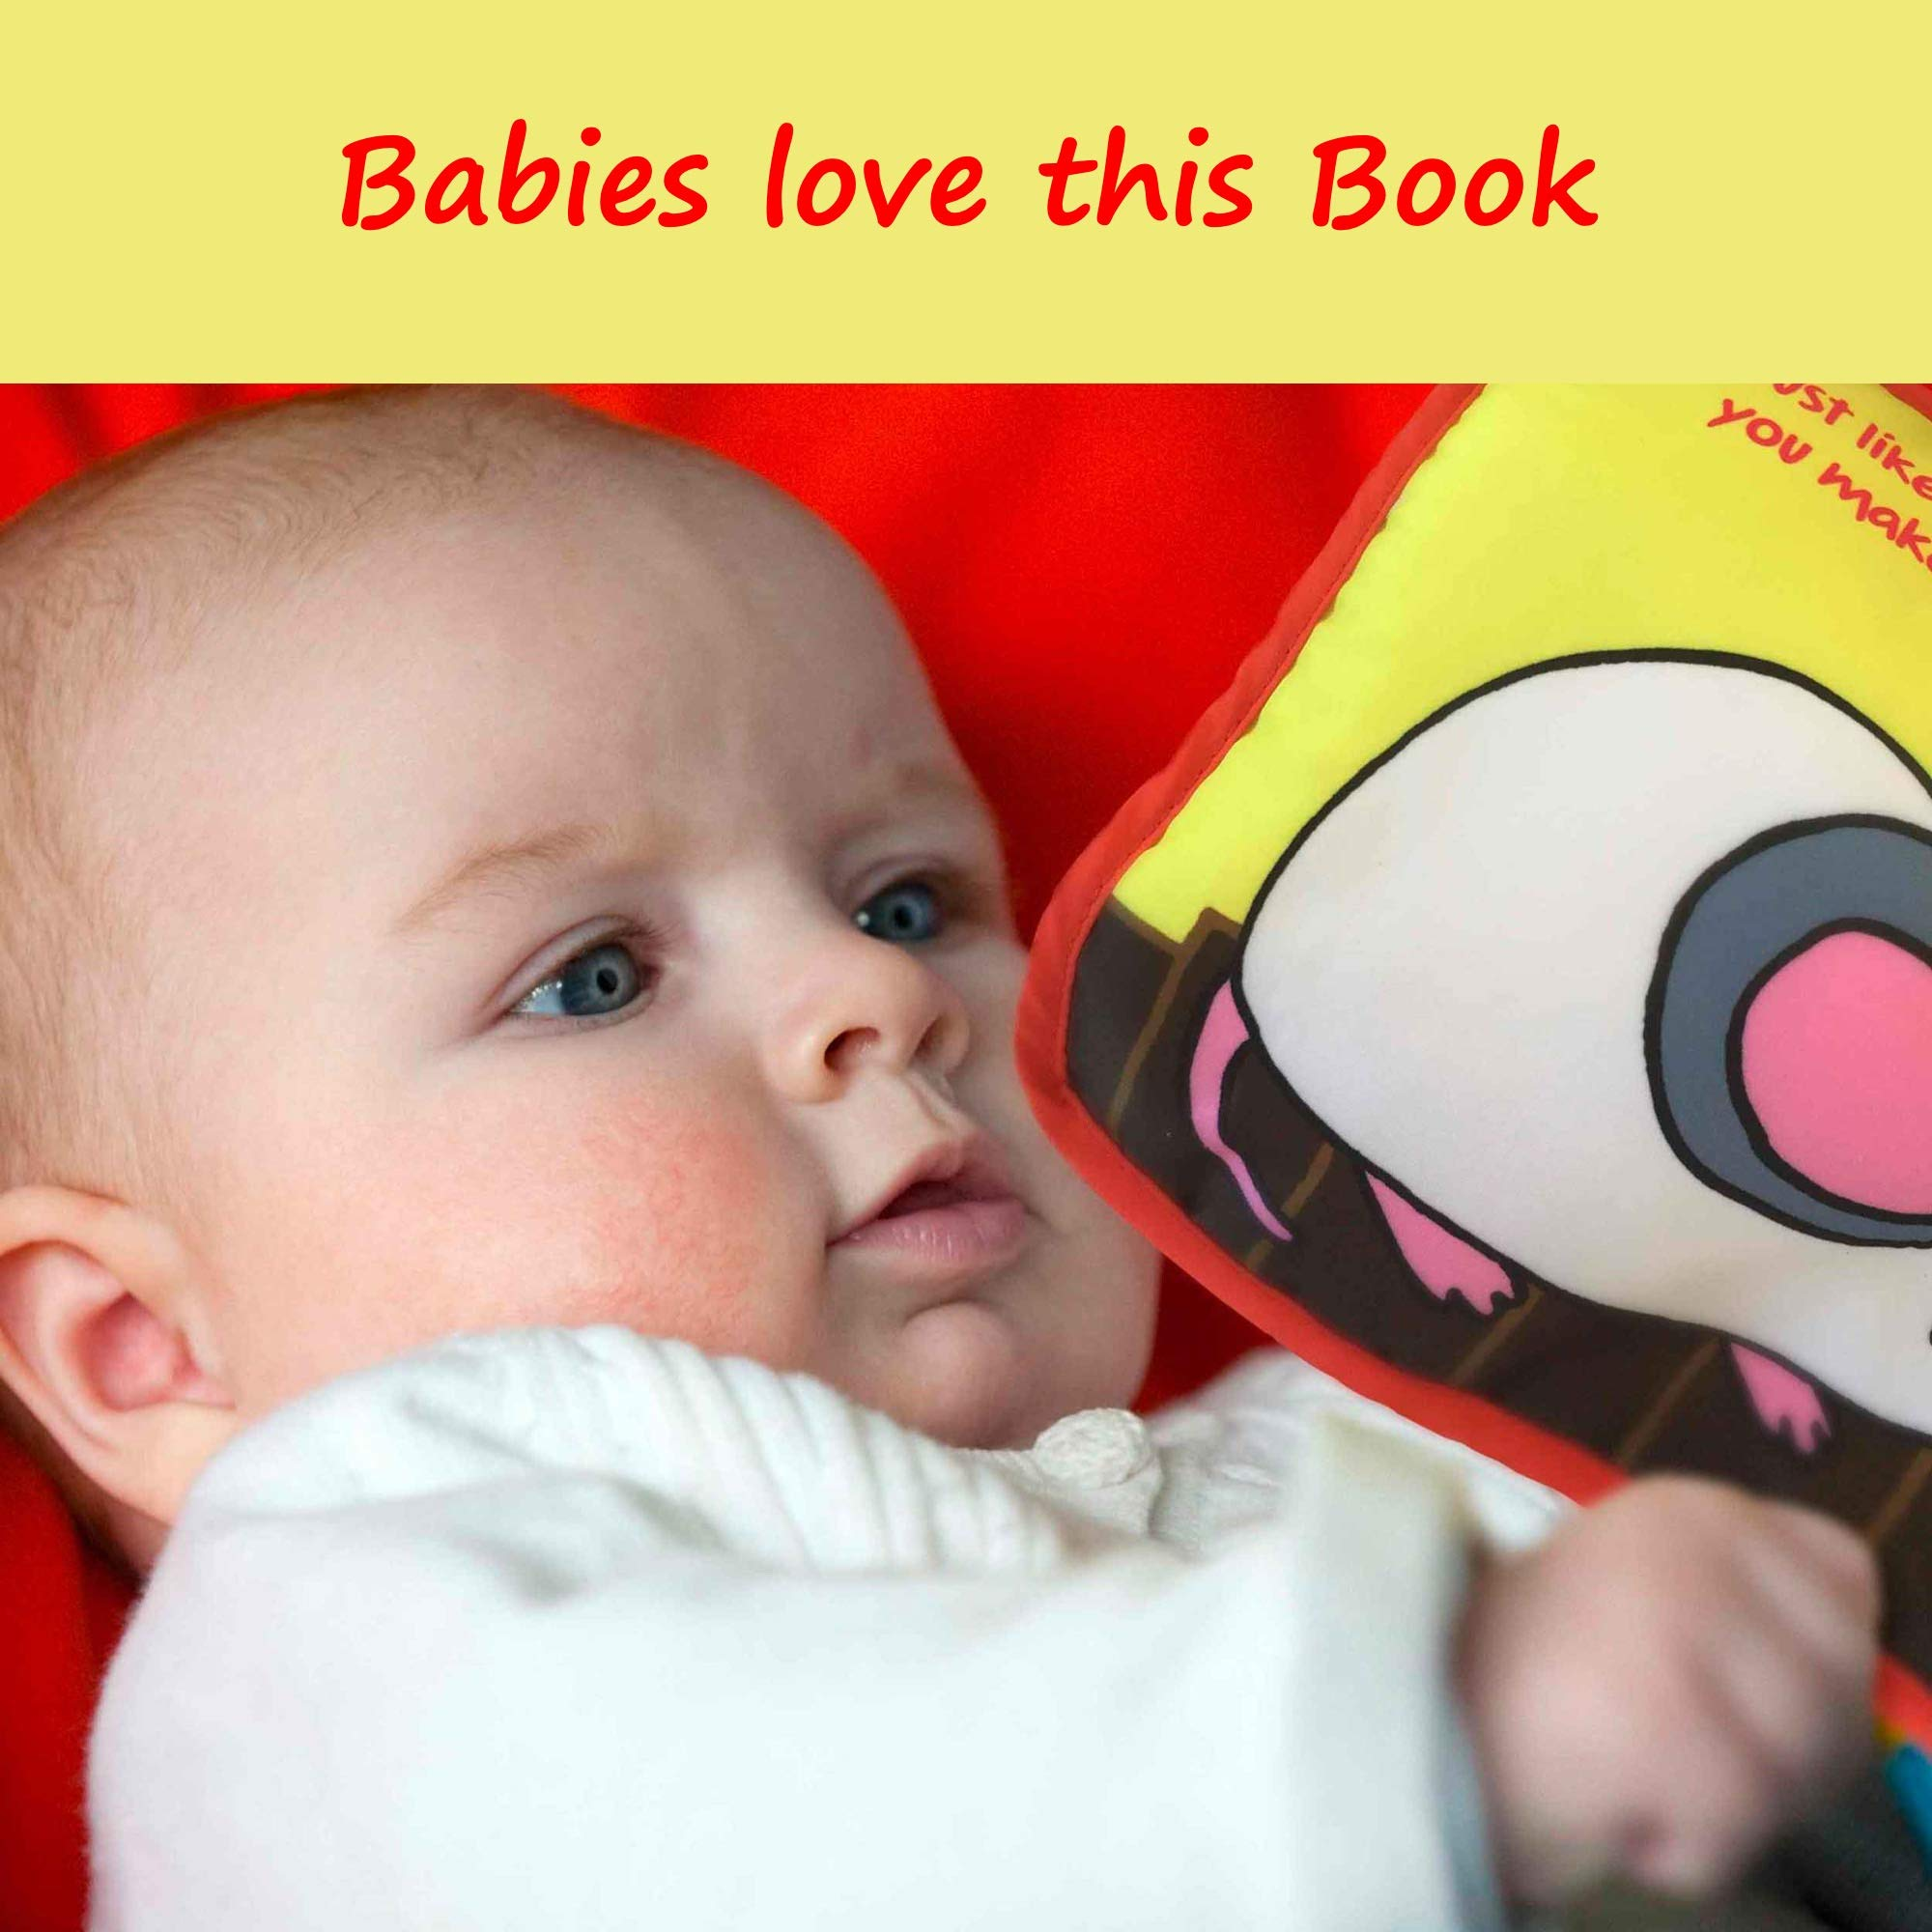 Premium Baby Book First Year Cloth Book Baby Gift Fun Interactive Soft Book For Babies Infants Boys Girls With Crinkly Sounds Developmental Toy Cute Baby Shower Box Touch And Feel Peekaboo